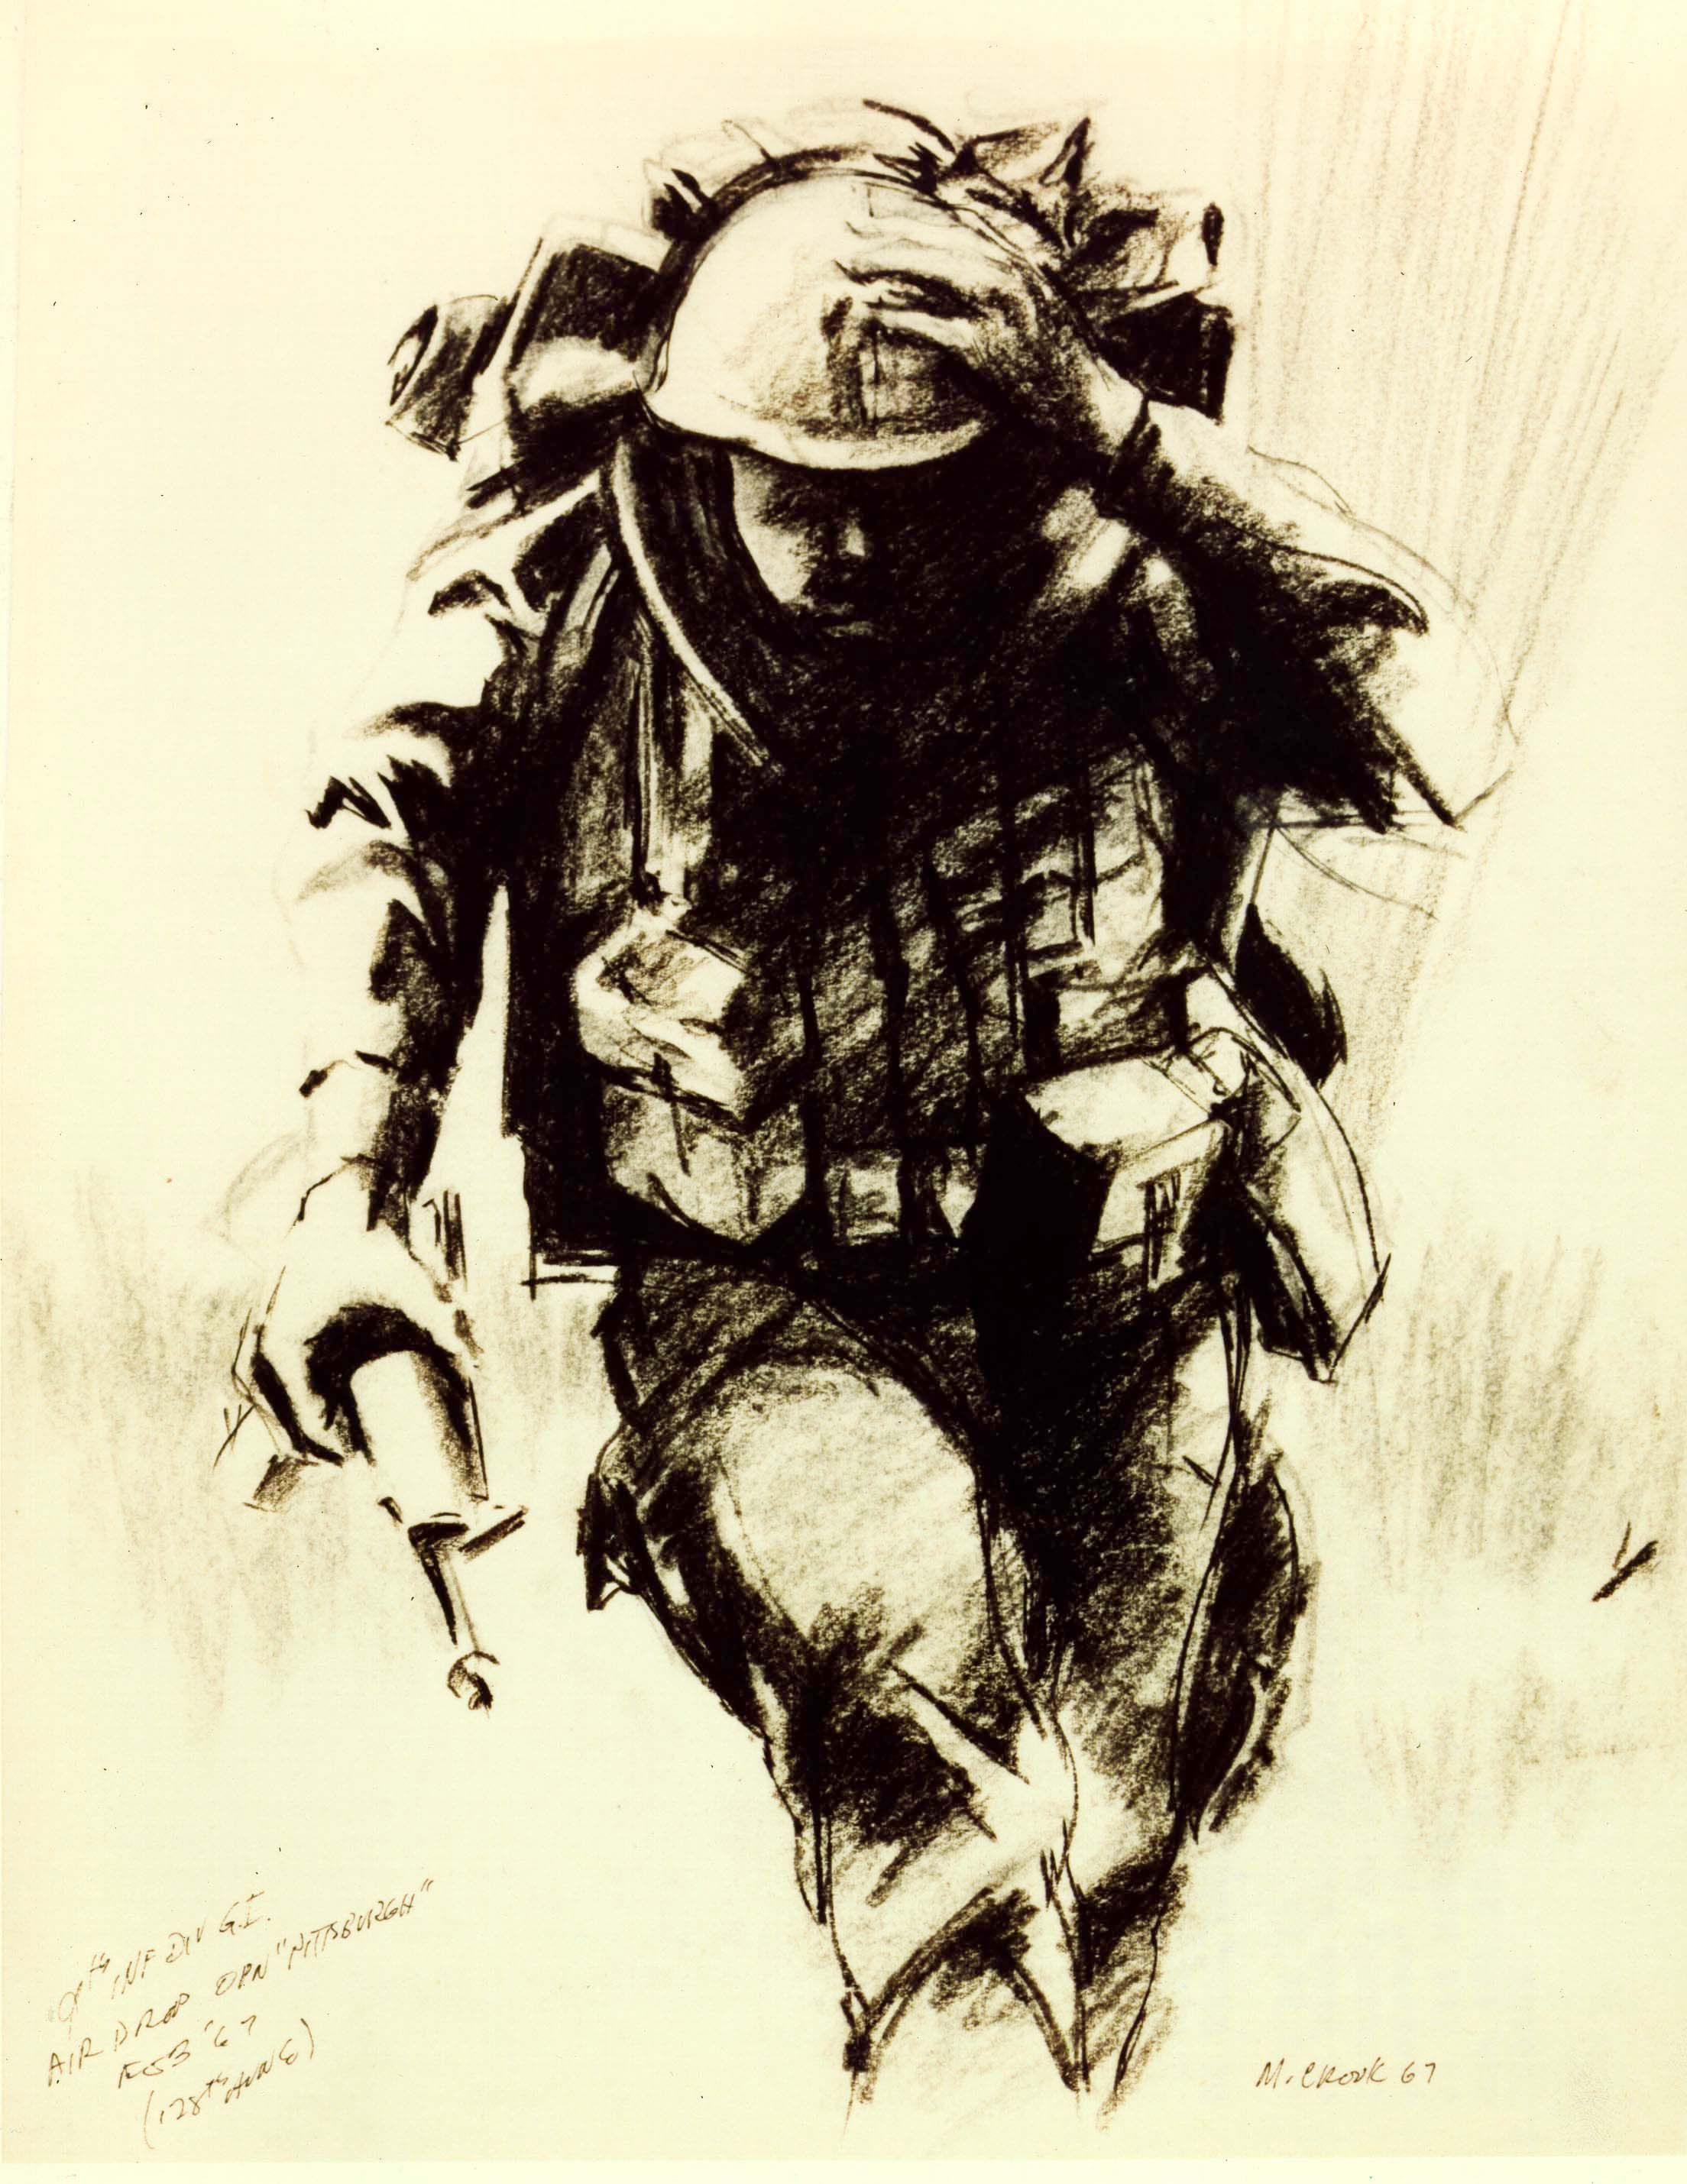 tribute to us army infantry artwork peer support pinterest